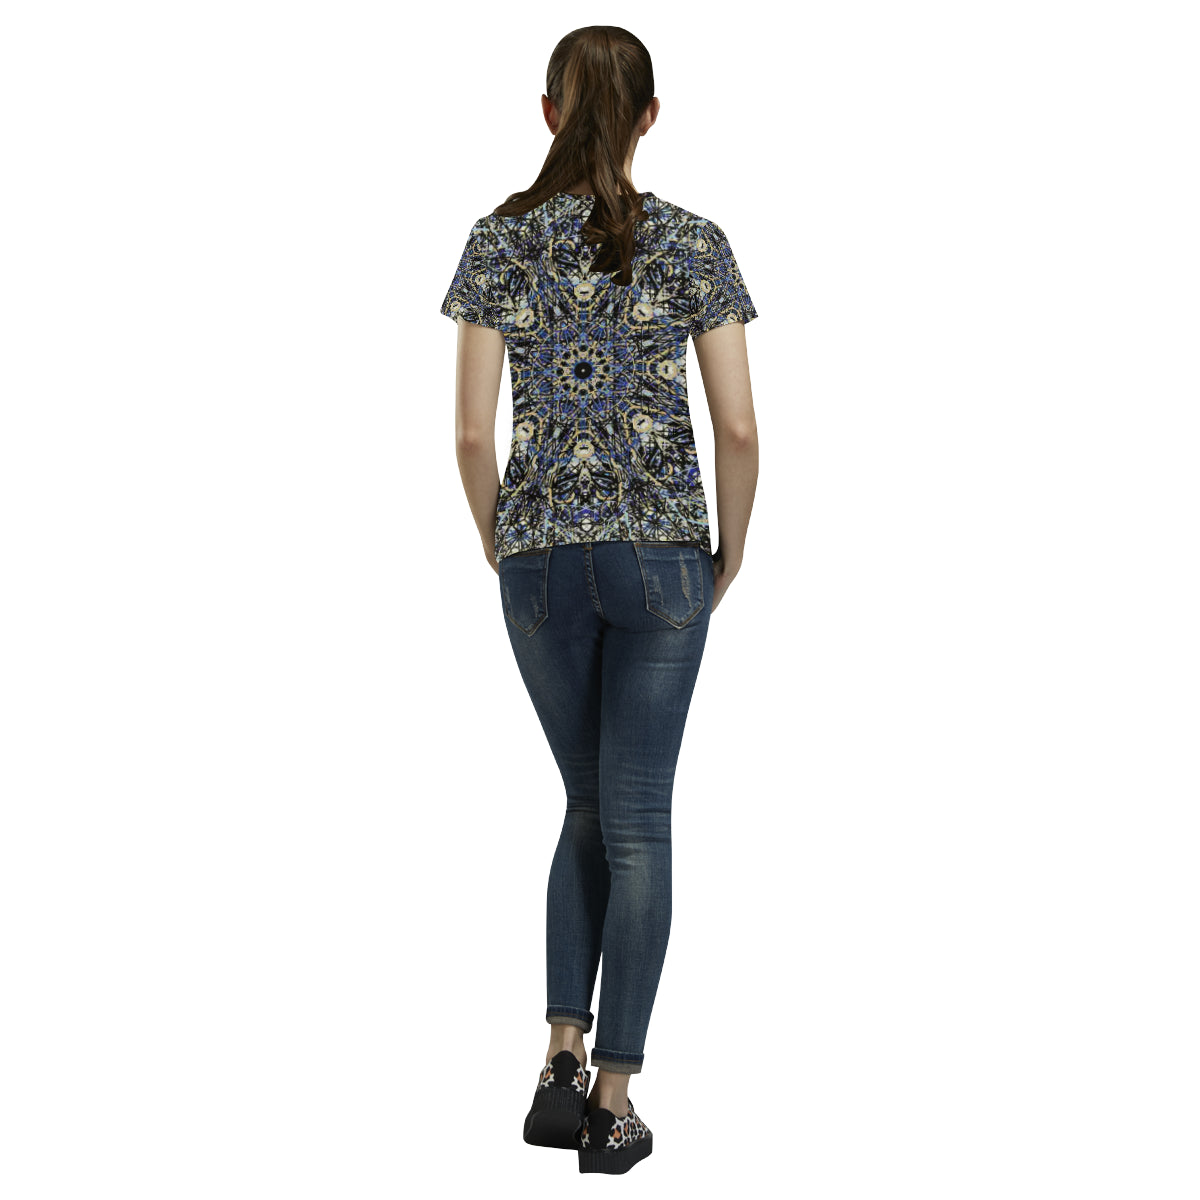 Thleudron Memory All Over Print T-Shirt for Women (USA Size) (Model T40) - Thleudron